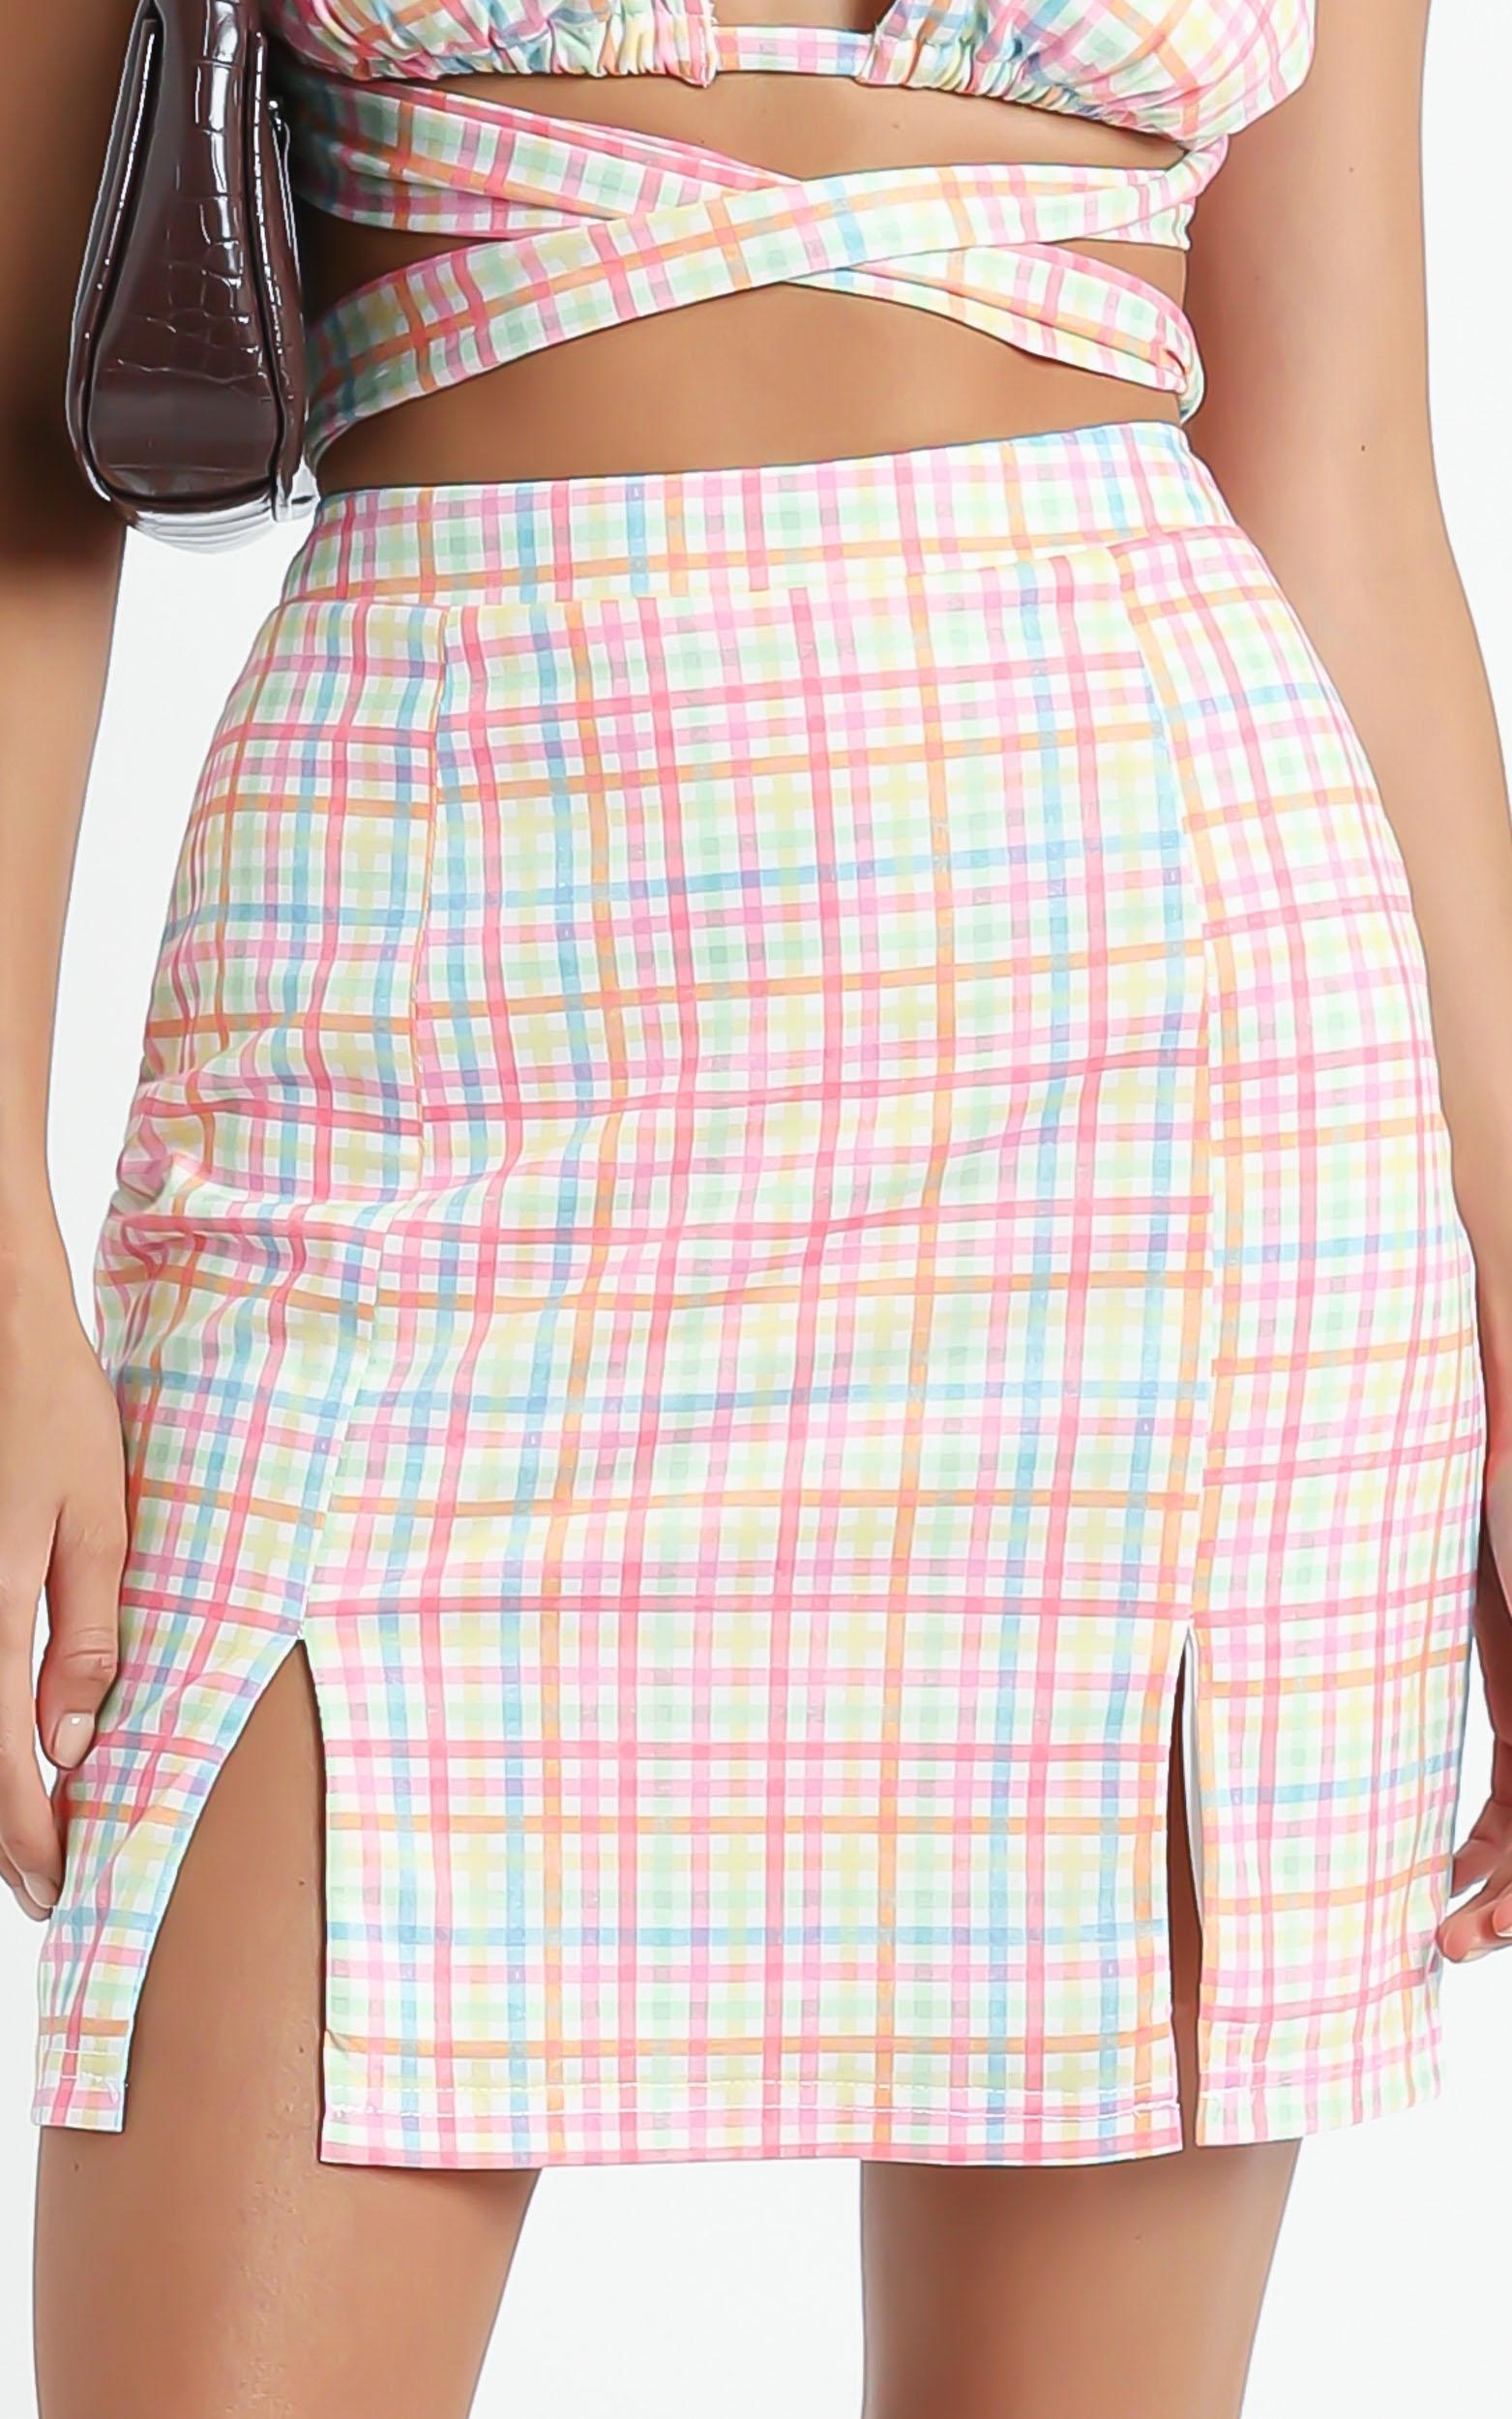 Levitha Skirt in Rainbow Check - 6 (XS), MLT2, hi-res image number null